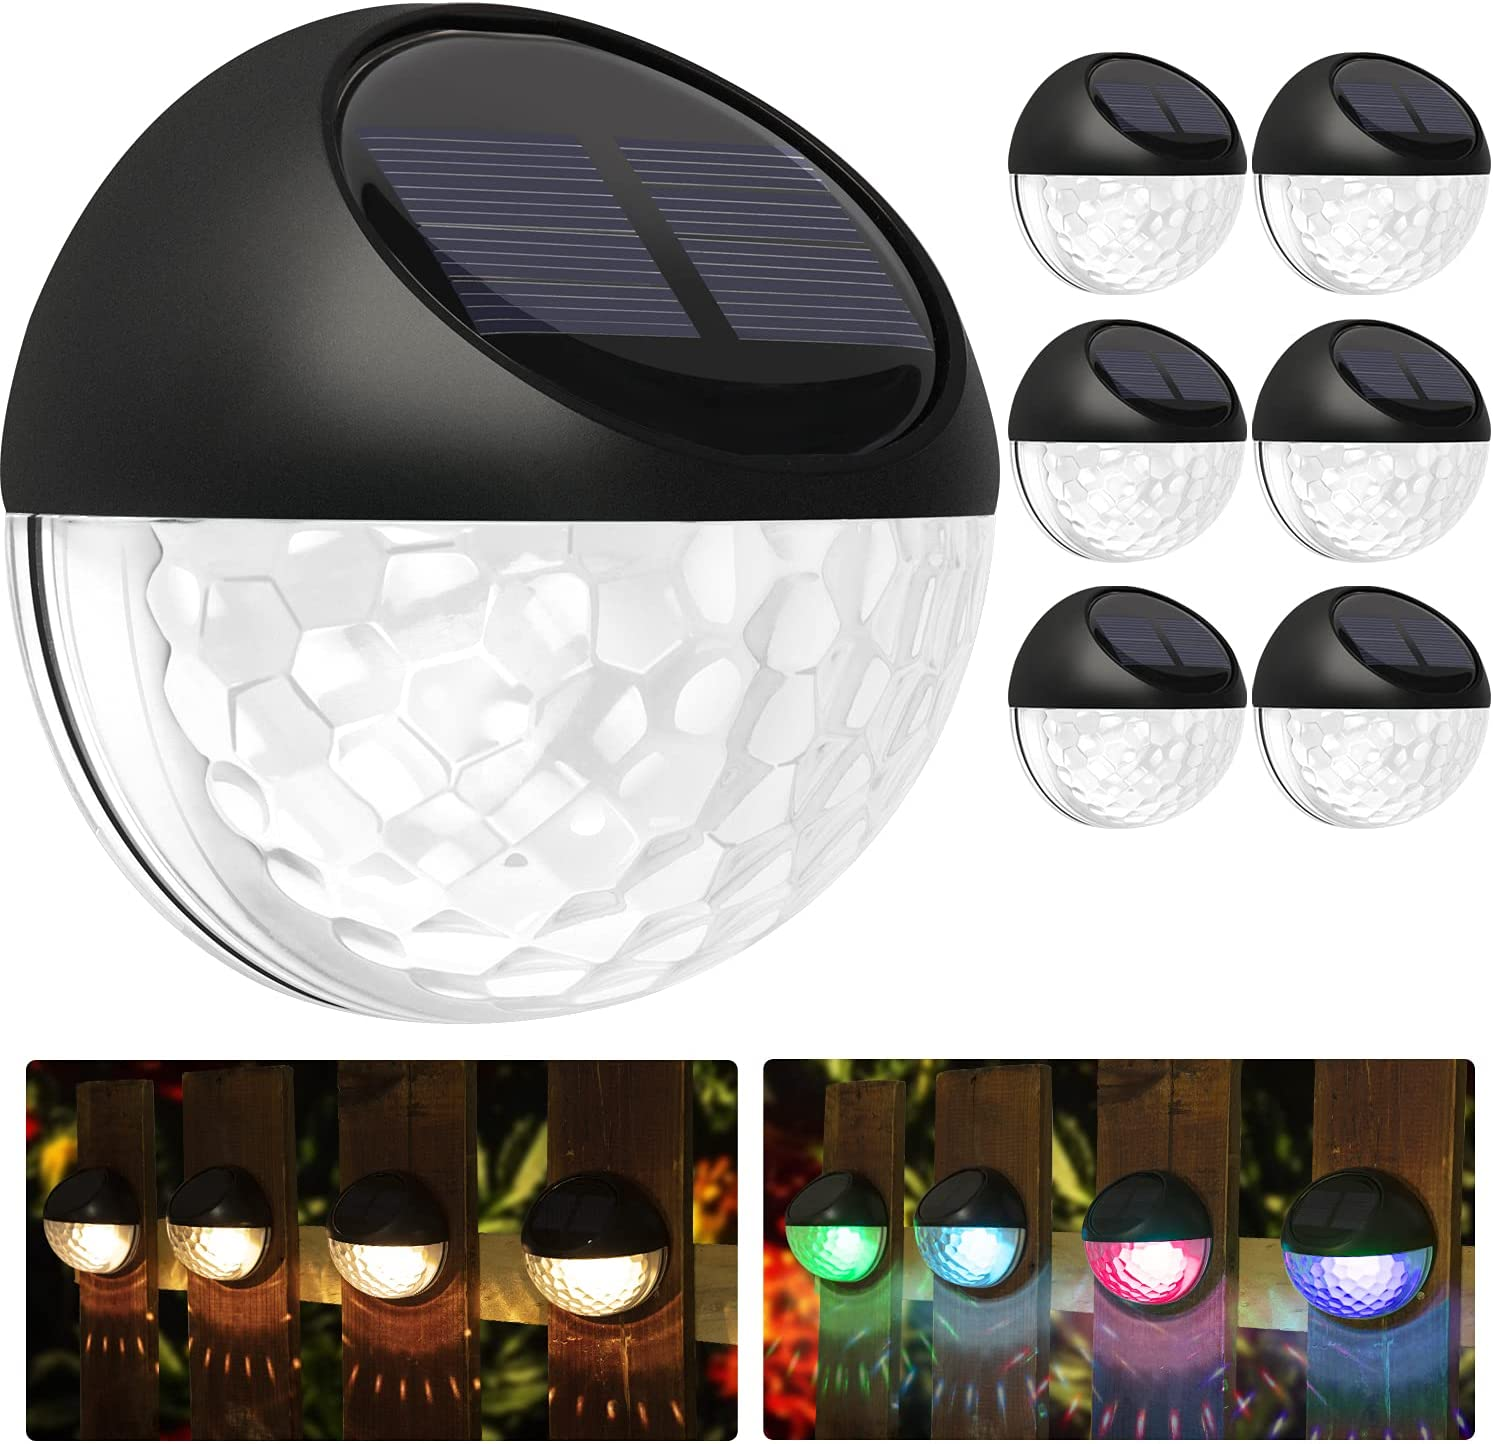 6 Pack Superior Solar Deck Lights IP Outdoor WaterproofSolar Step Max 51% OFF 65